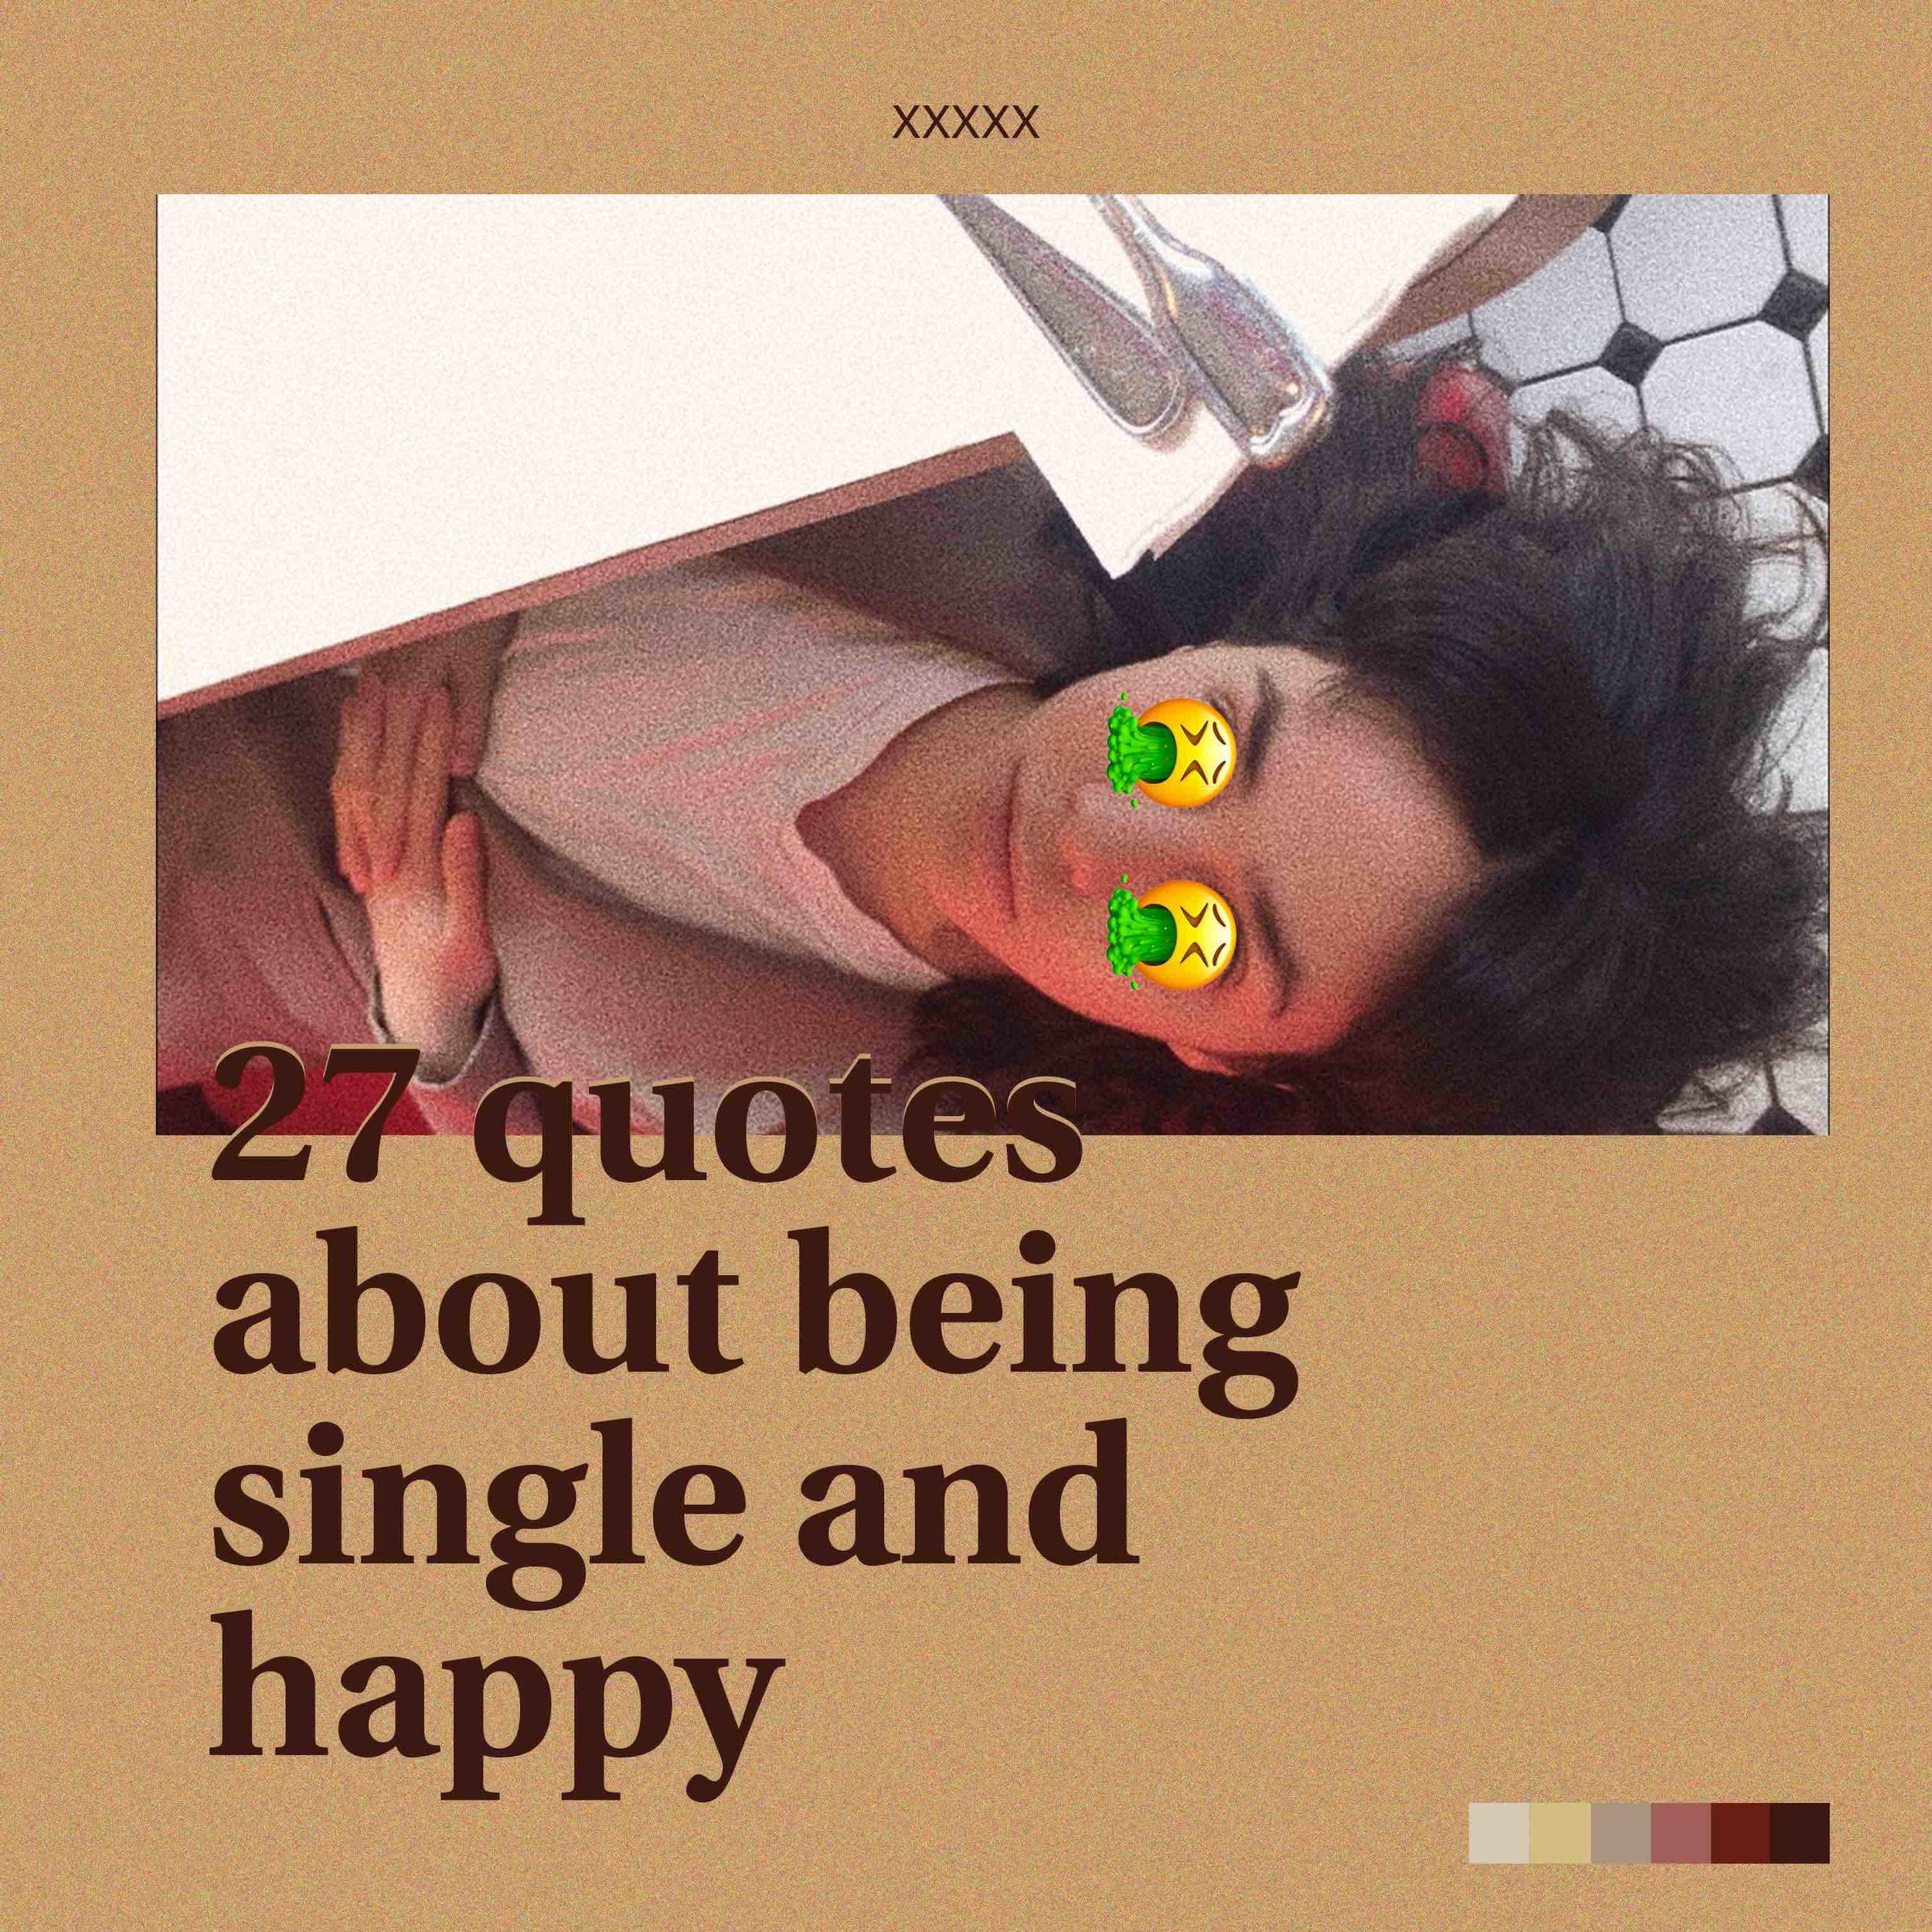 HOW-TO-BE-A-HAPPY-WOMAN-SINGLE-2019-3.jpg